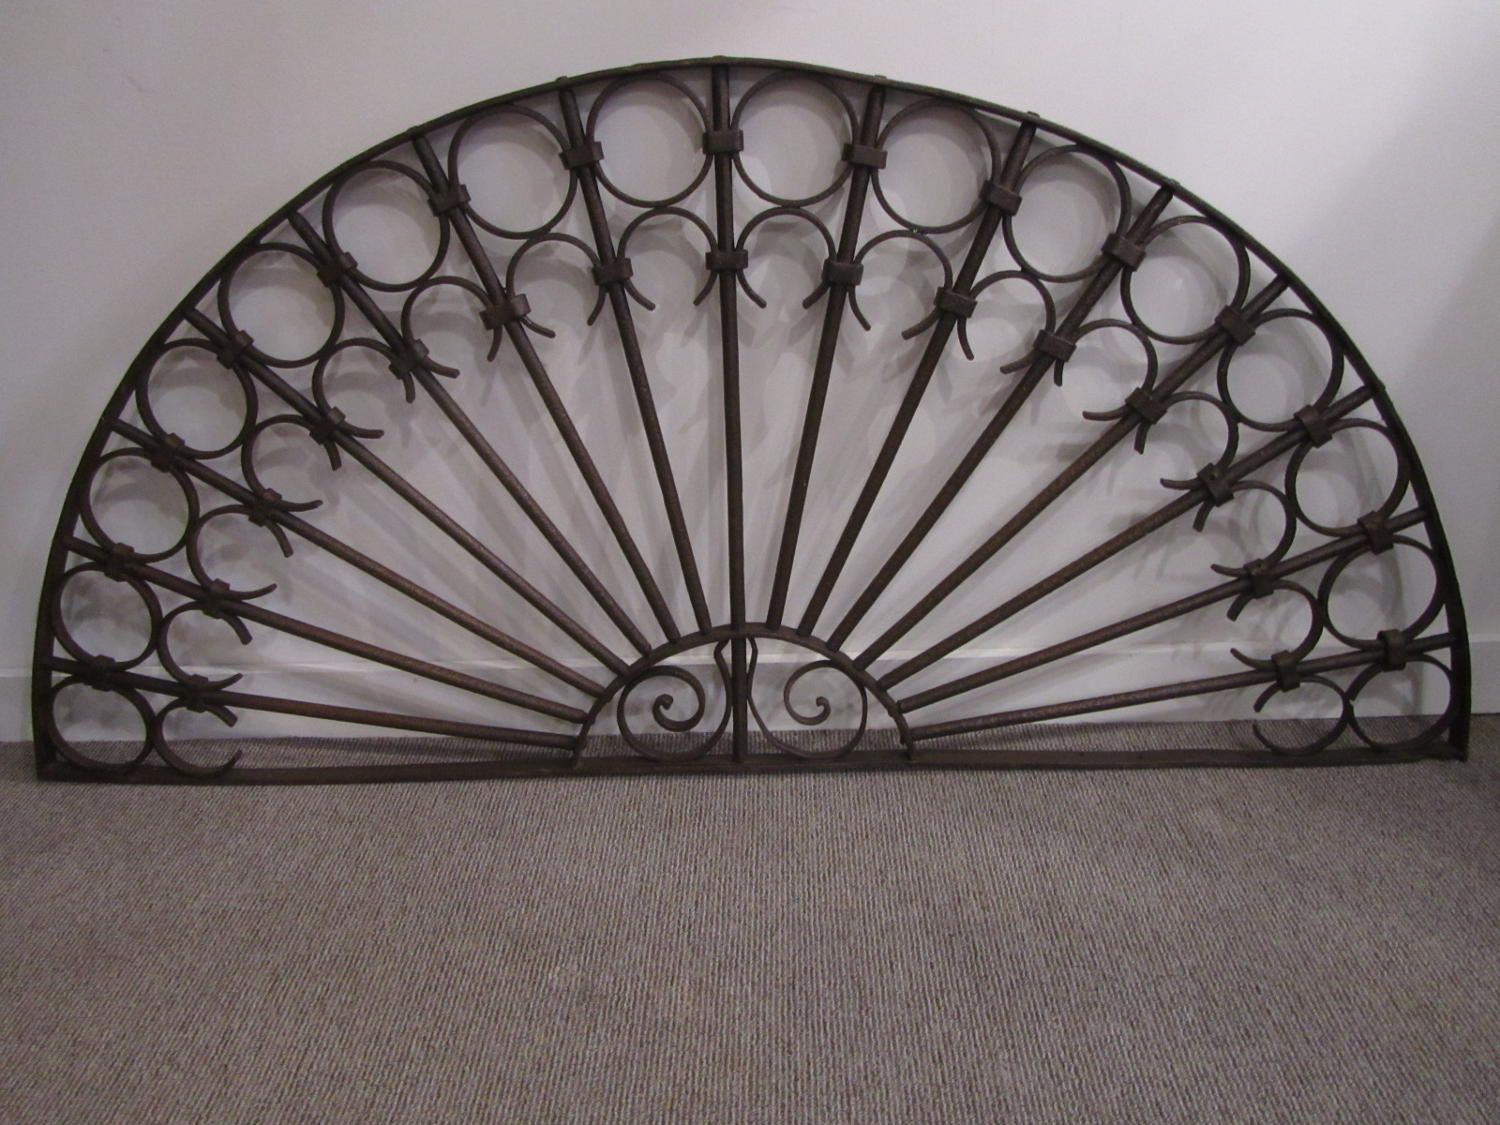 An iron orangery doorway grill